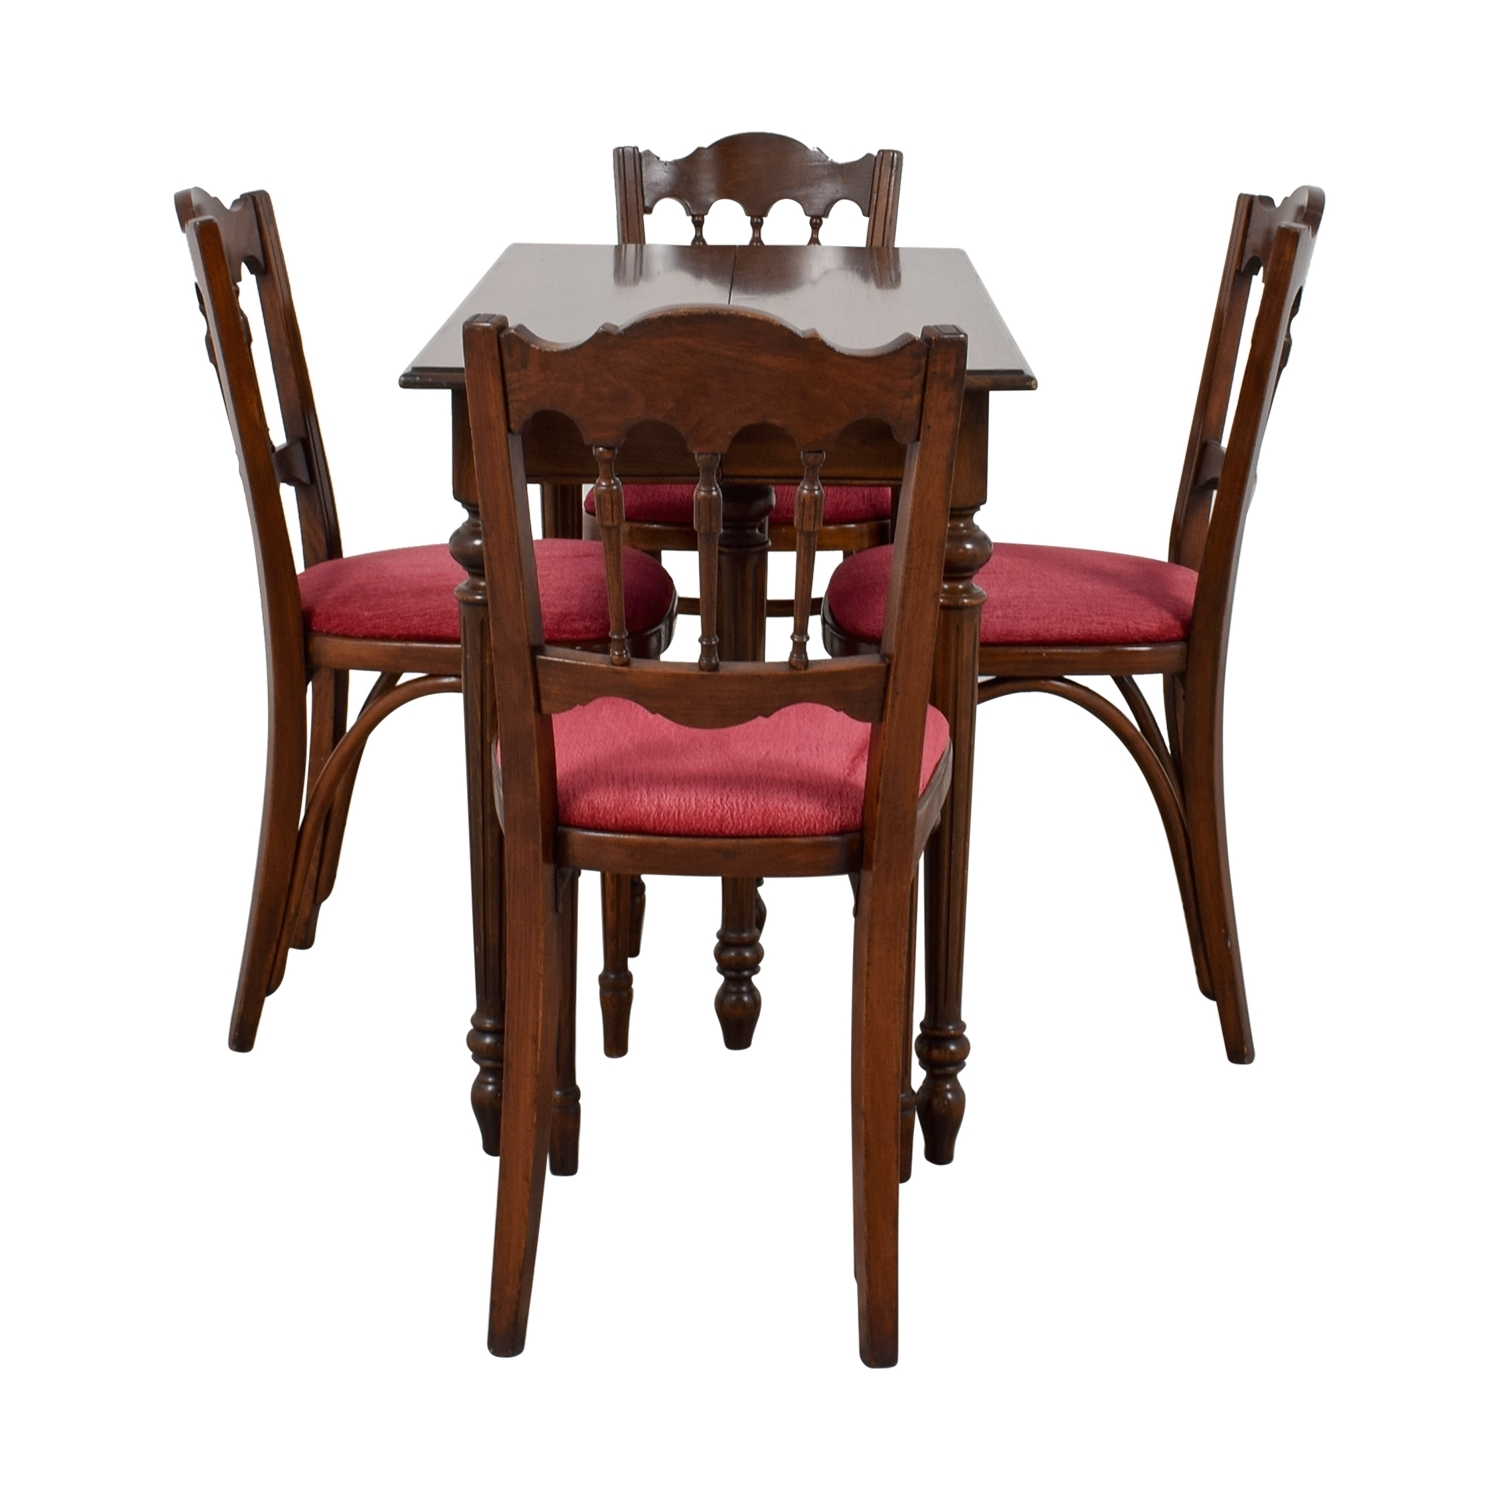 [%67% Off – Vinatage Mahogany Dining Table Set / Tables In Latest Mahogany Dining Table Sets|Mahogany Dining Table Sets For Most Popular 67% Off – Vinatage Mahogany Dining Table Set / Tables|Well Liked Mahogany Dining Table Sets Regarding 67% Off – Vinatage Mahogany Dining Table Set / Tables|Latest 67% Off – Vinatage Mahogany Dining Table Set / Tables In Mahogany Dining Table Sets%] (View 15 of 25)